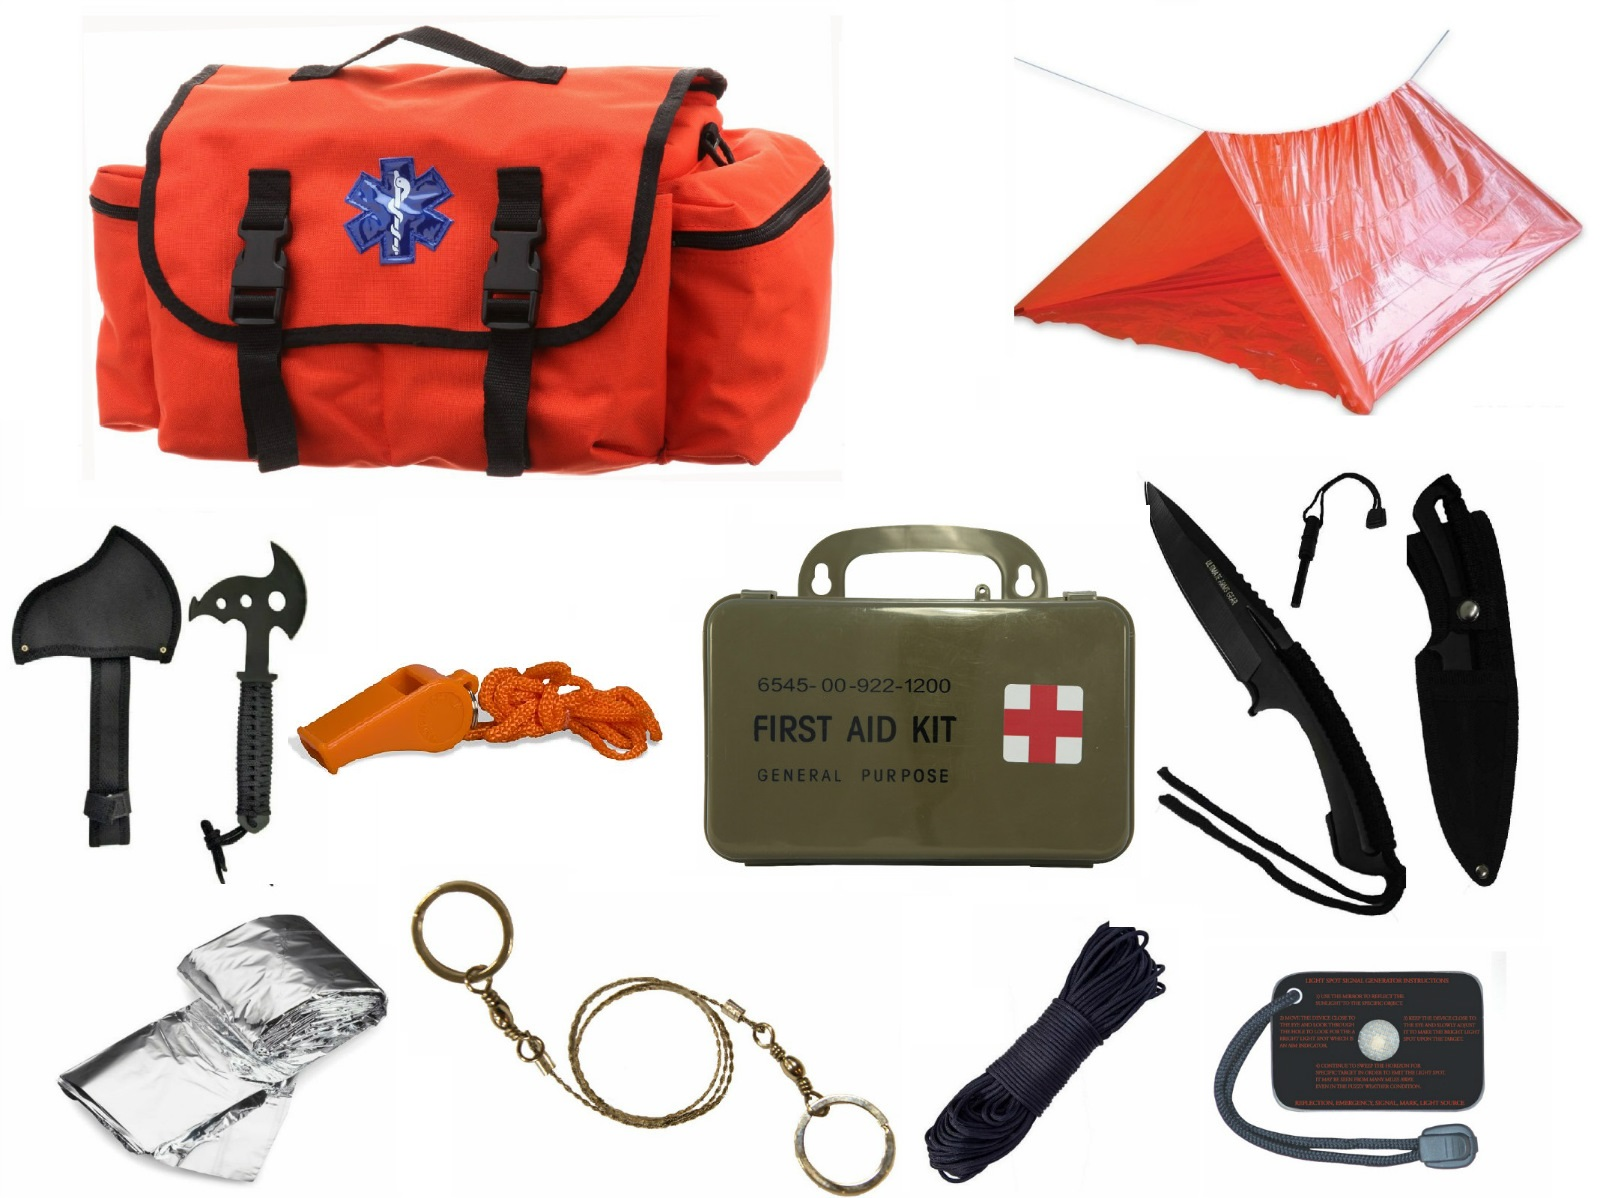 Ultimate Arms Gear Deluxe Orange Emergency Survival Rescue Bag Kit; Signal Mirror, Polarshield Blanket, Knife Fire... by